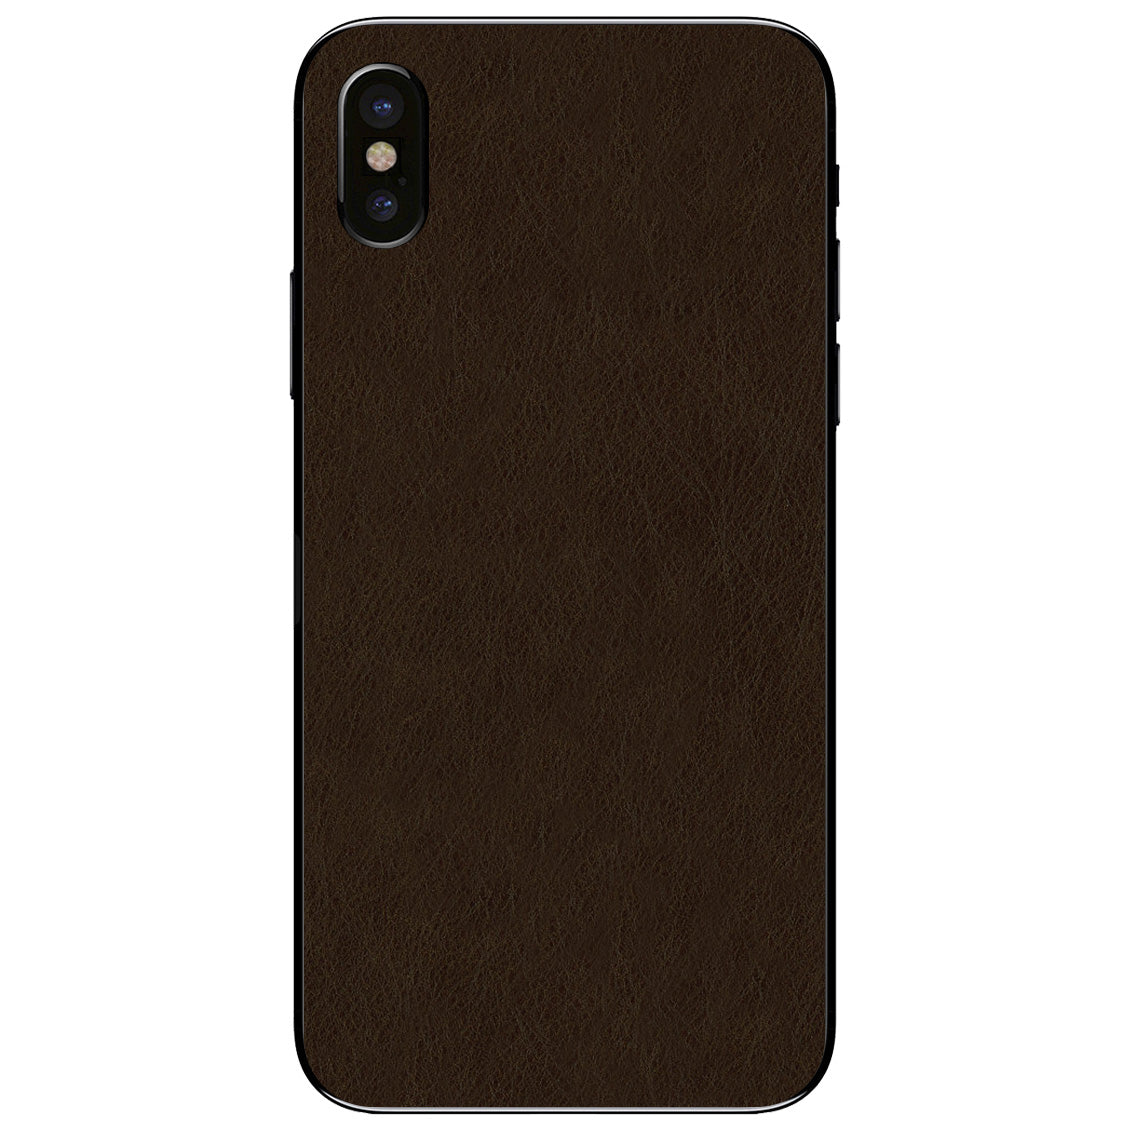 Espresso iPhone X Leather Skin